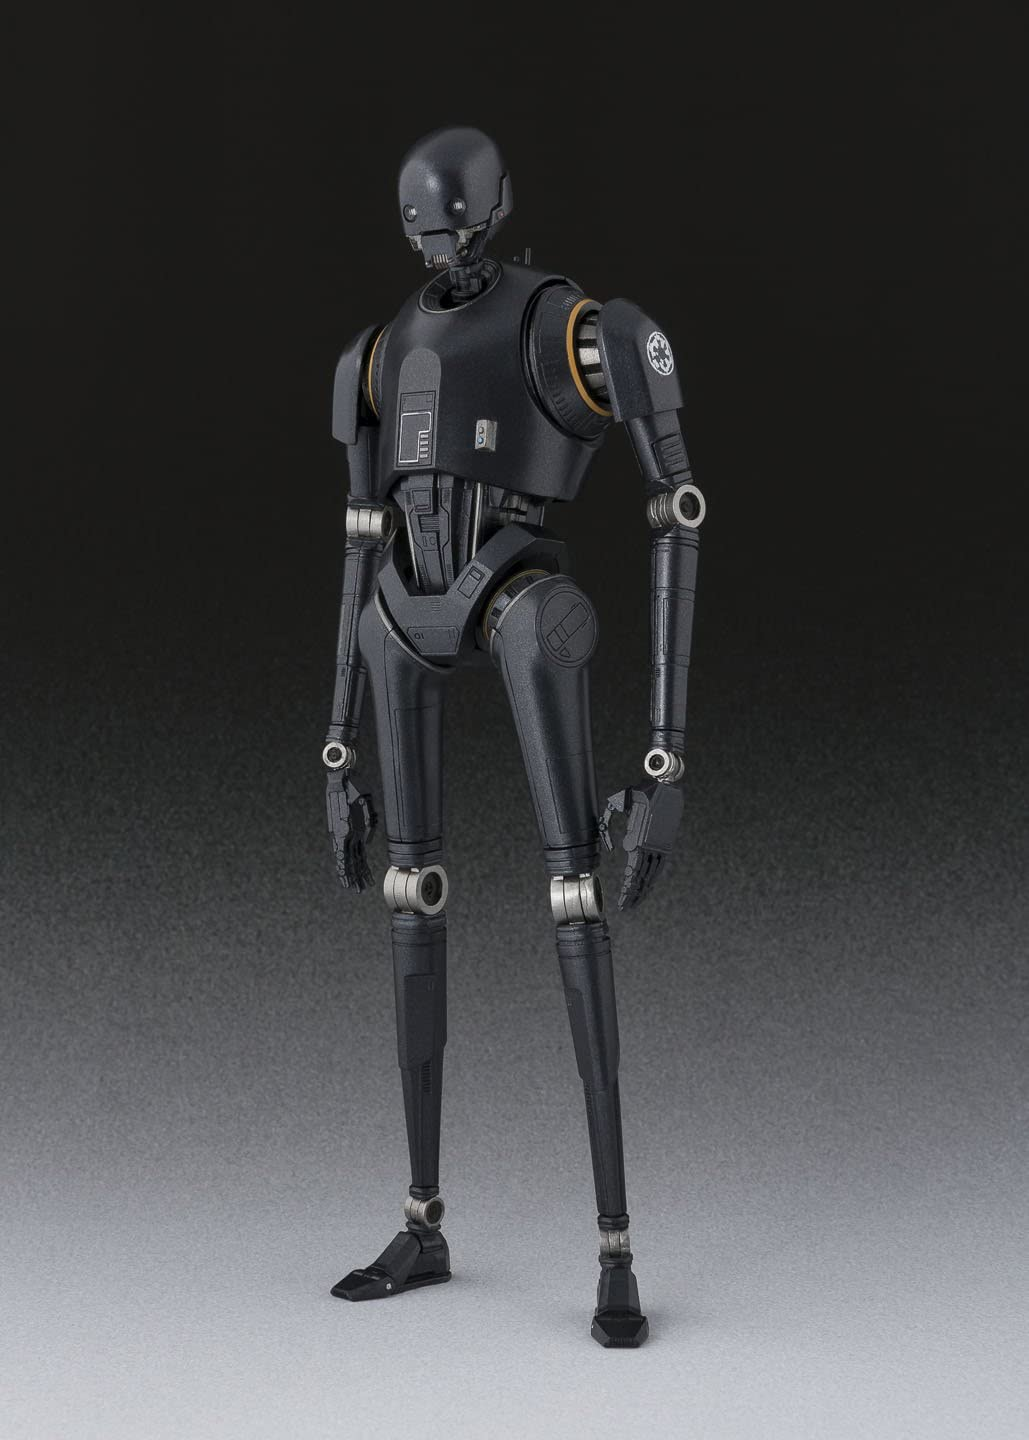 S.H.Figuart Star Wars SHF Rogue One K-2SO Action Figure